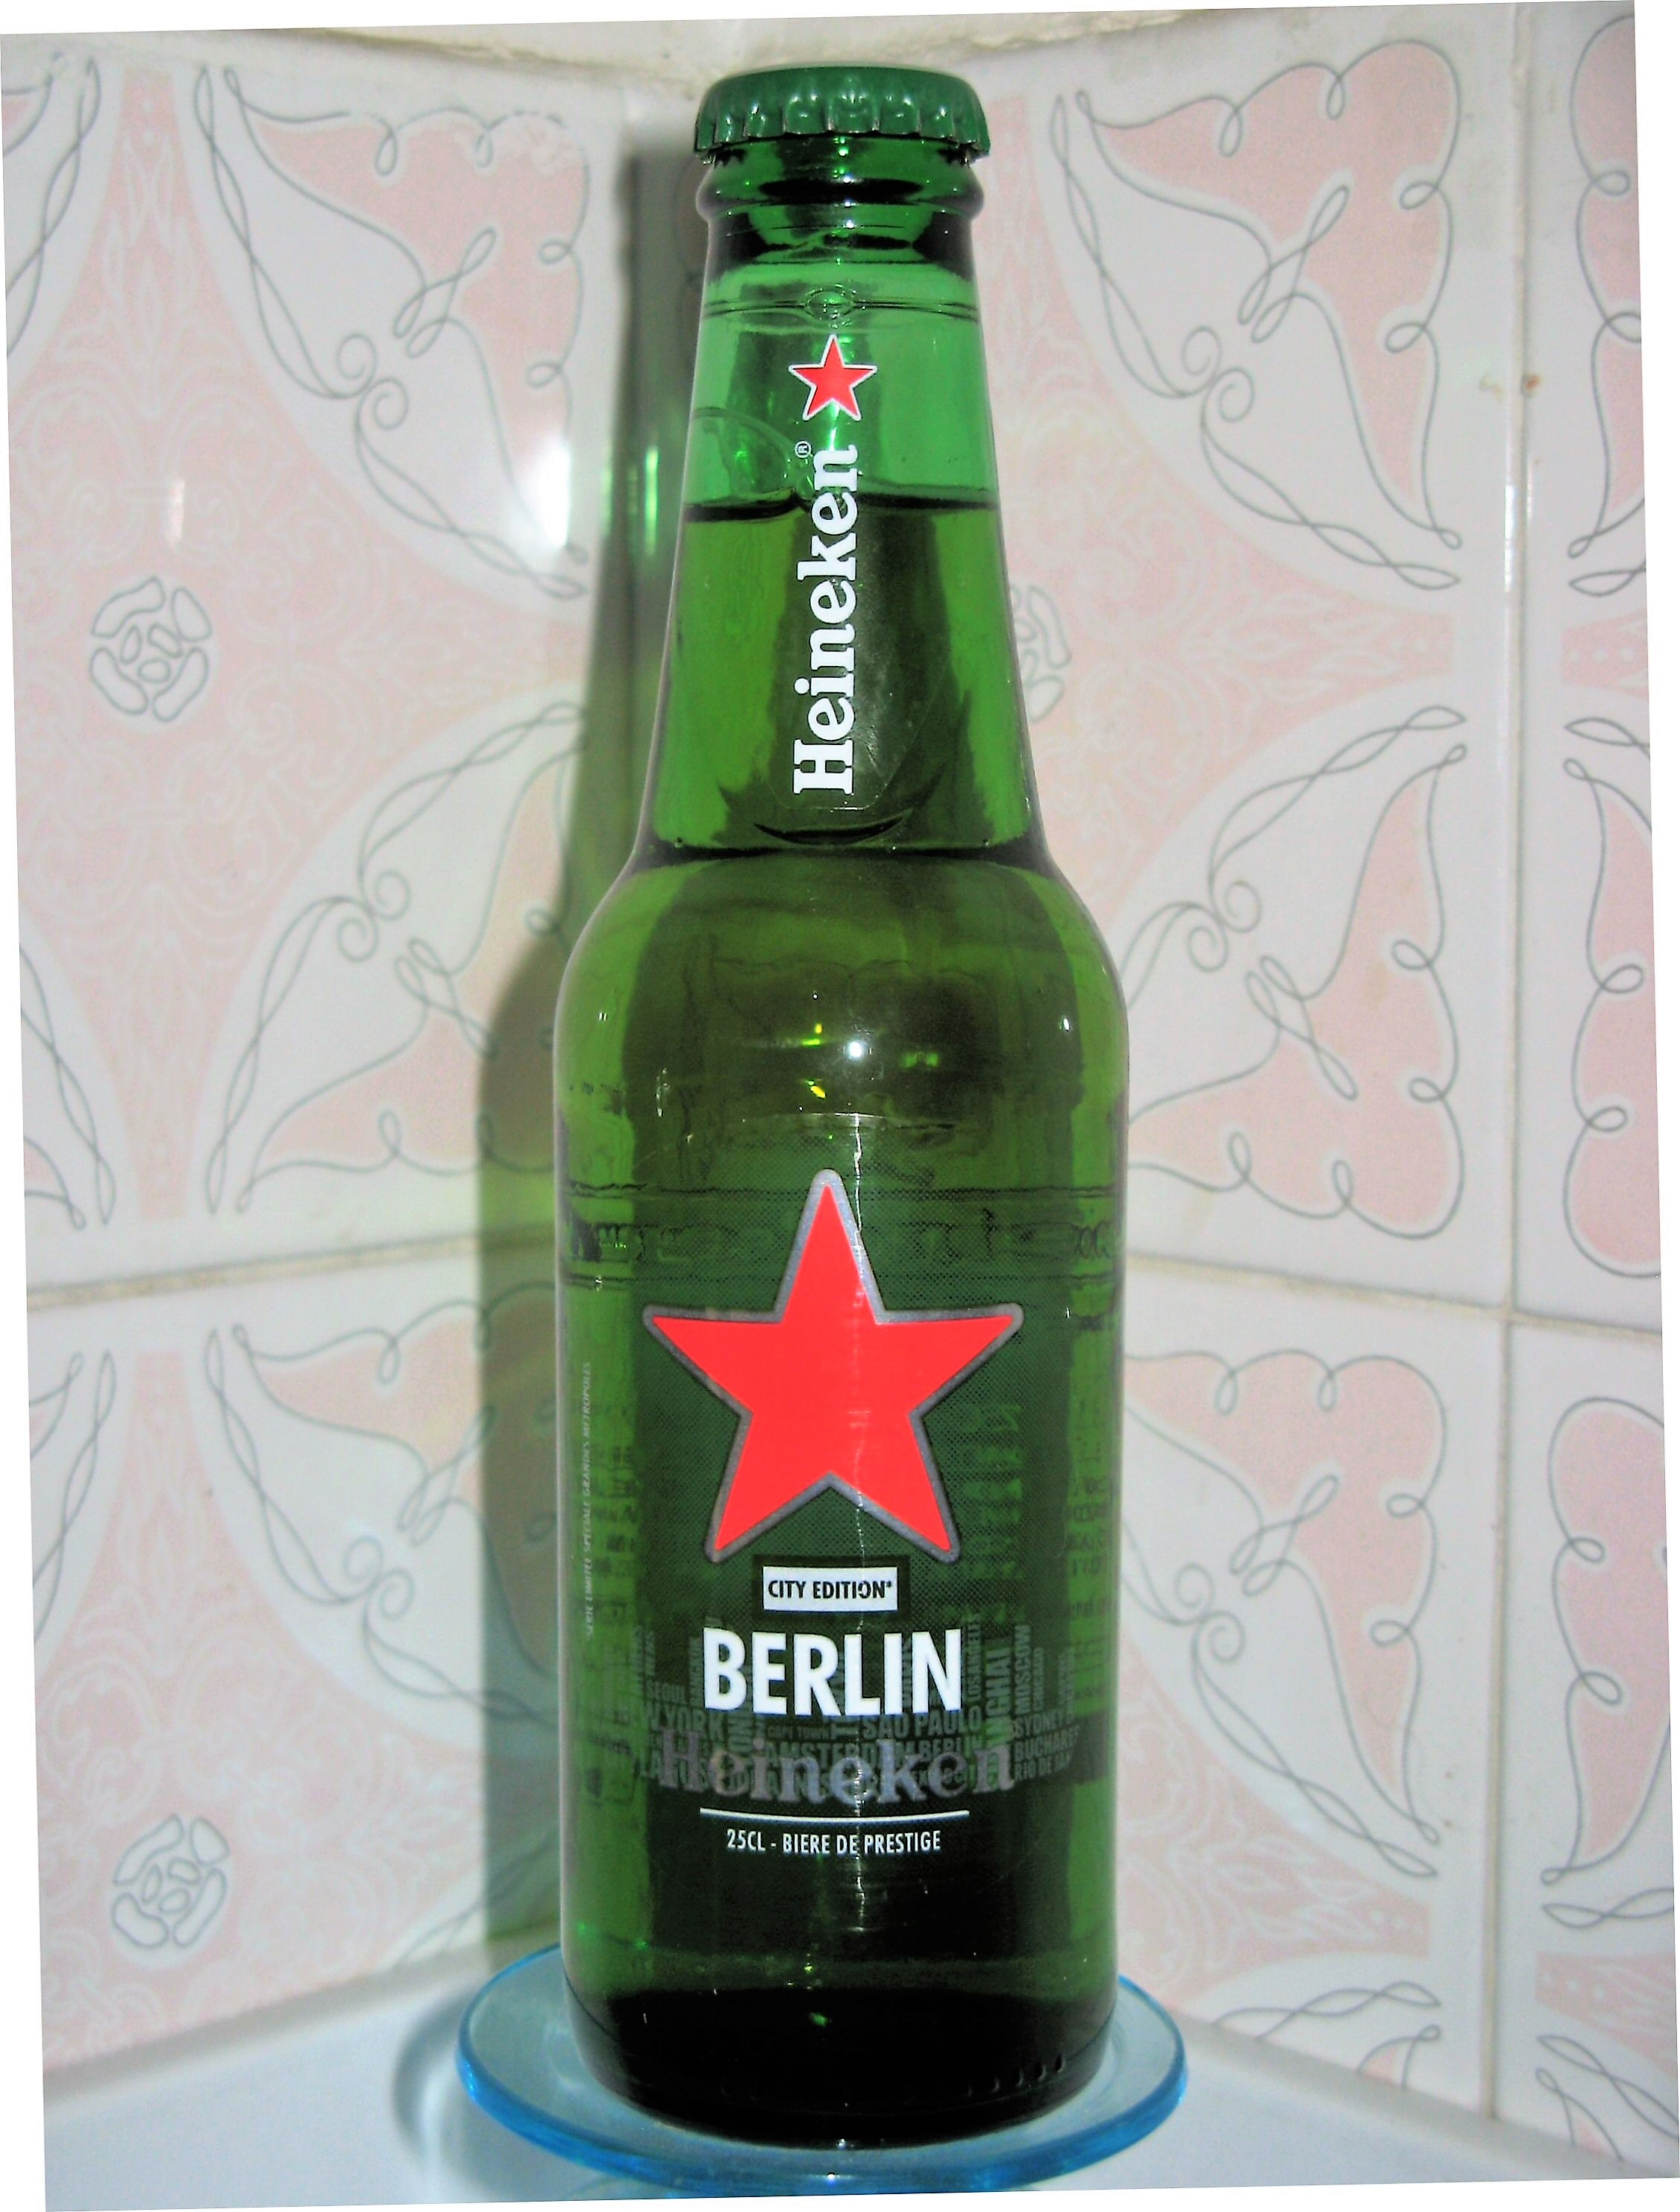 AC HEINEKEN CITY EDITION BERLIN 2014 25CL A.jpg